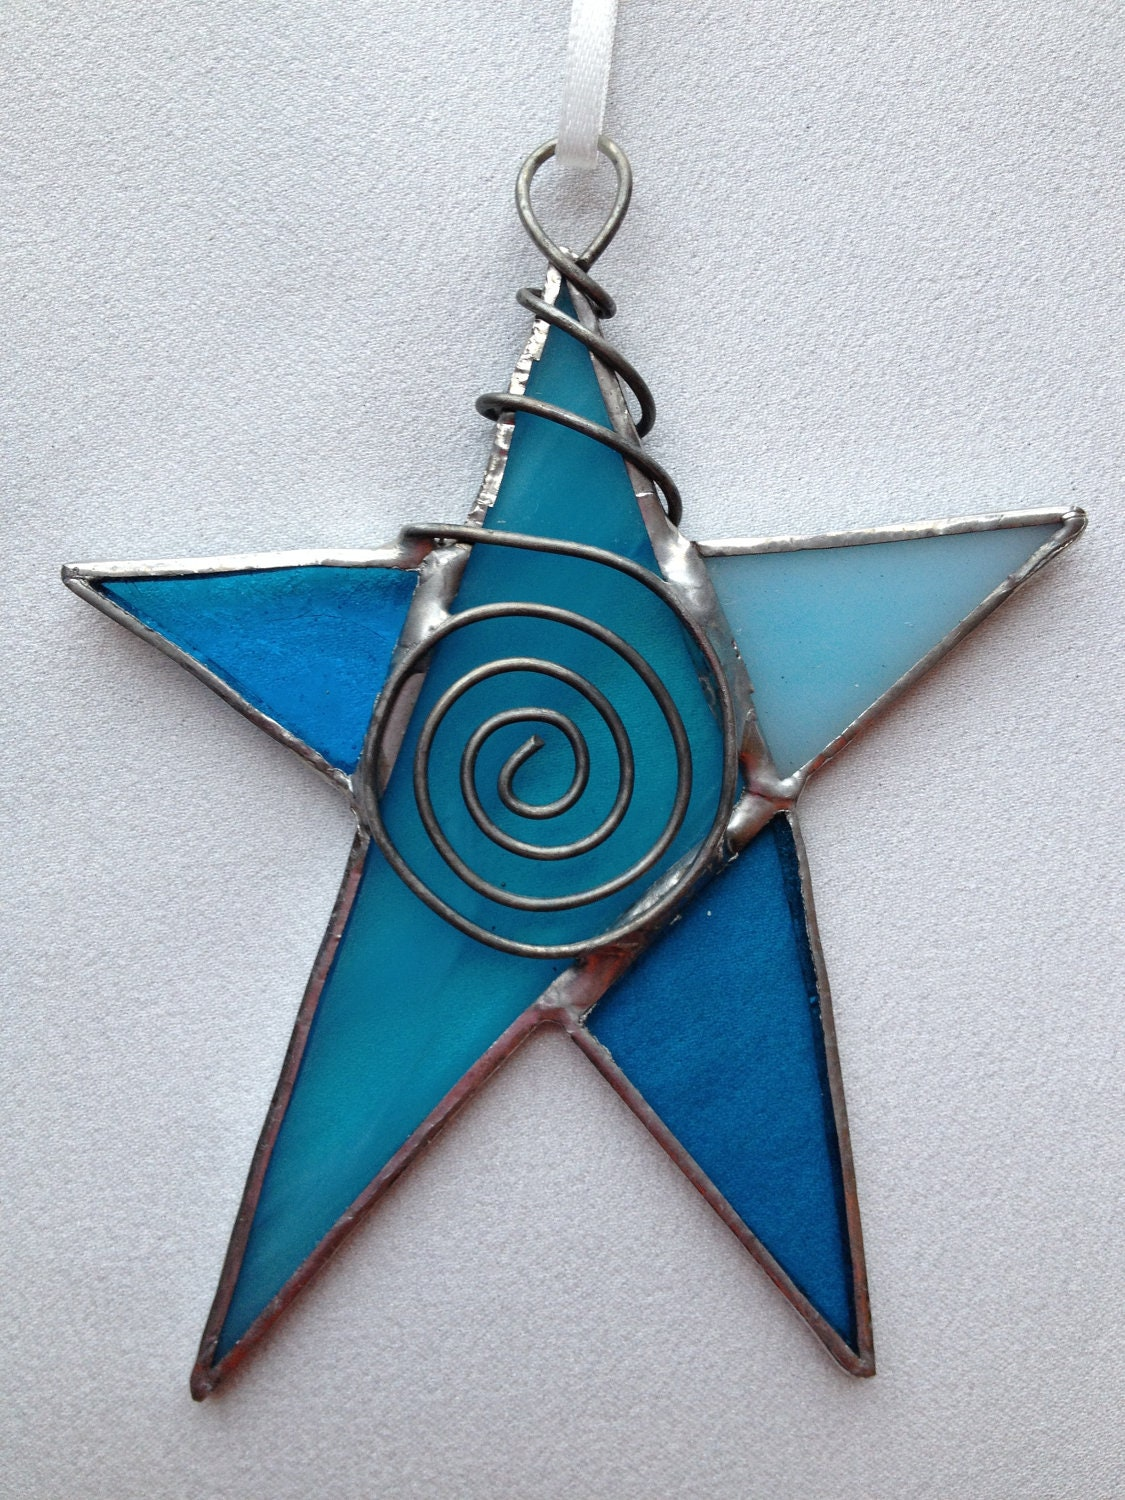 Stained glass ornament aqua blue star with wire